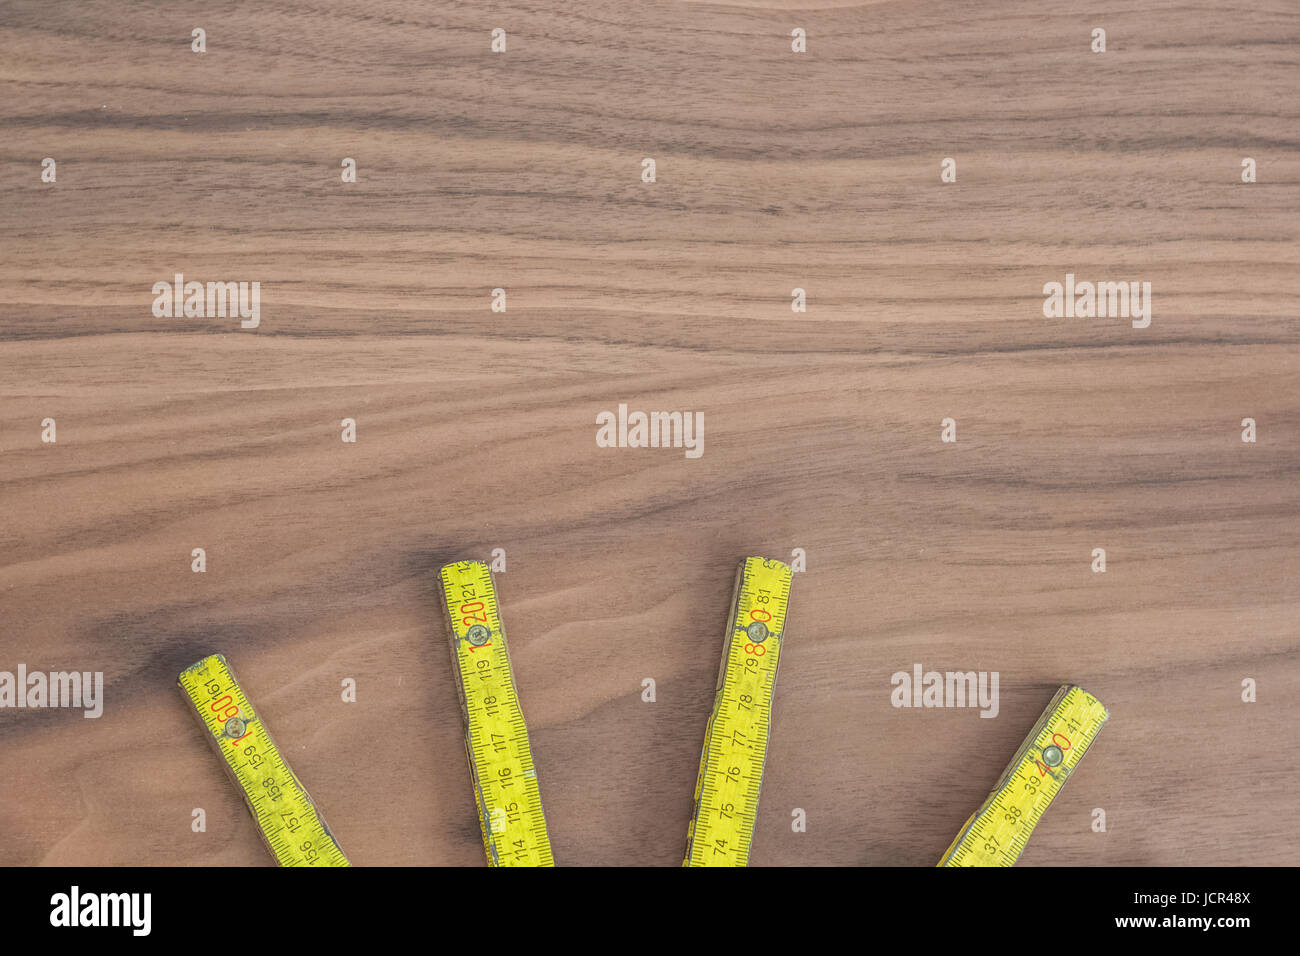 Measuring tool, wooden meter stick on a table - Stock Image